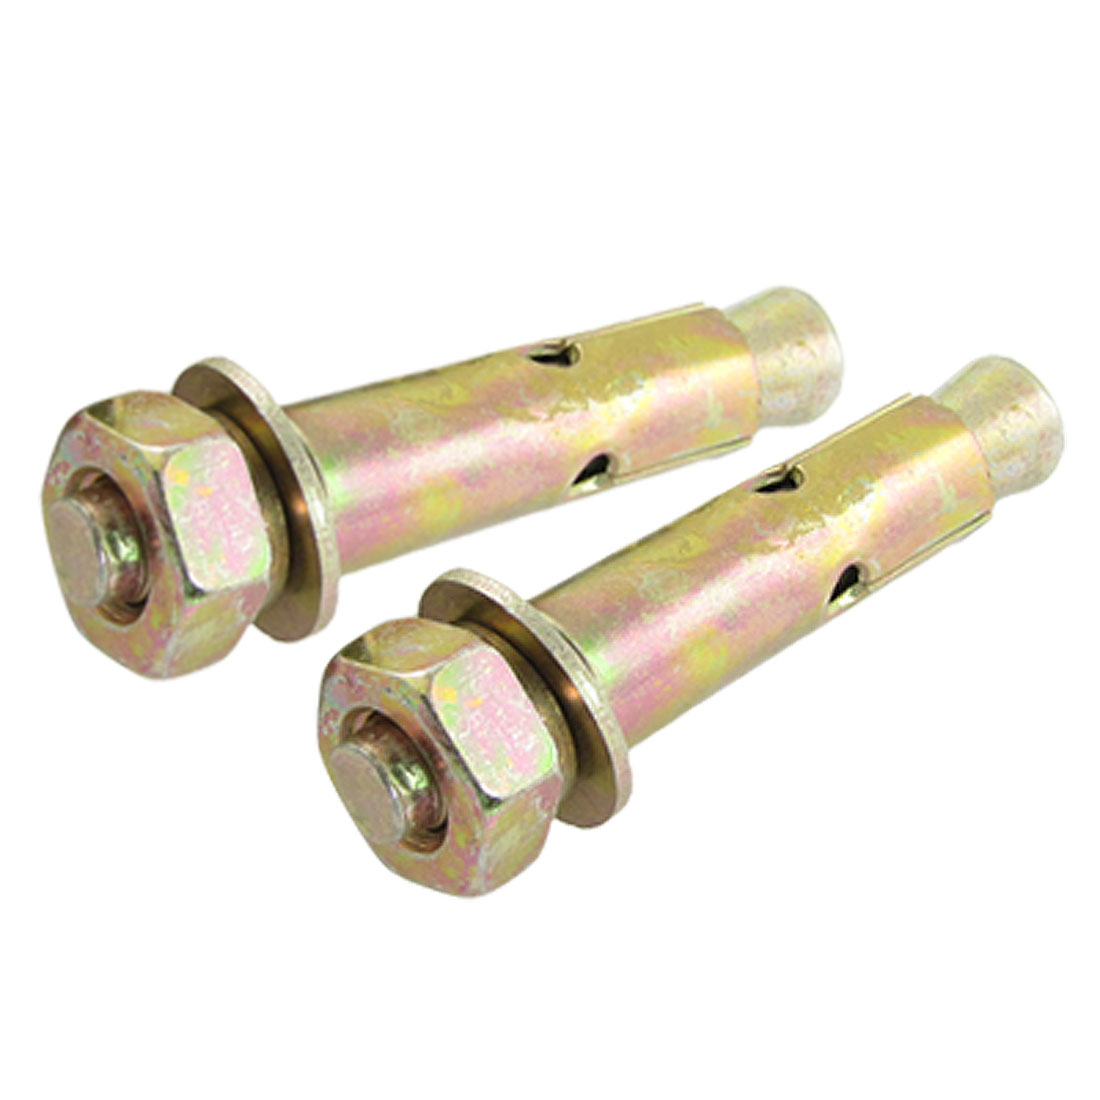 2-Pcs-M10-x-70mm-Hex-Nut-Expansion-Bolt-Sleeve-Anchors-Efxbc